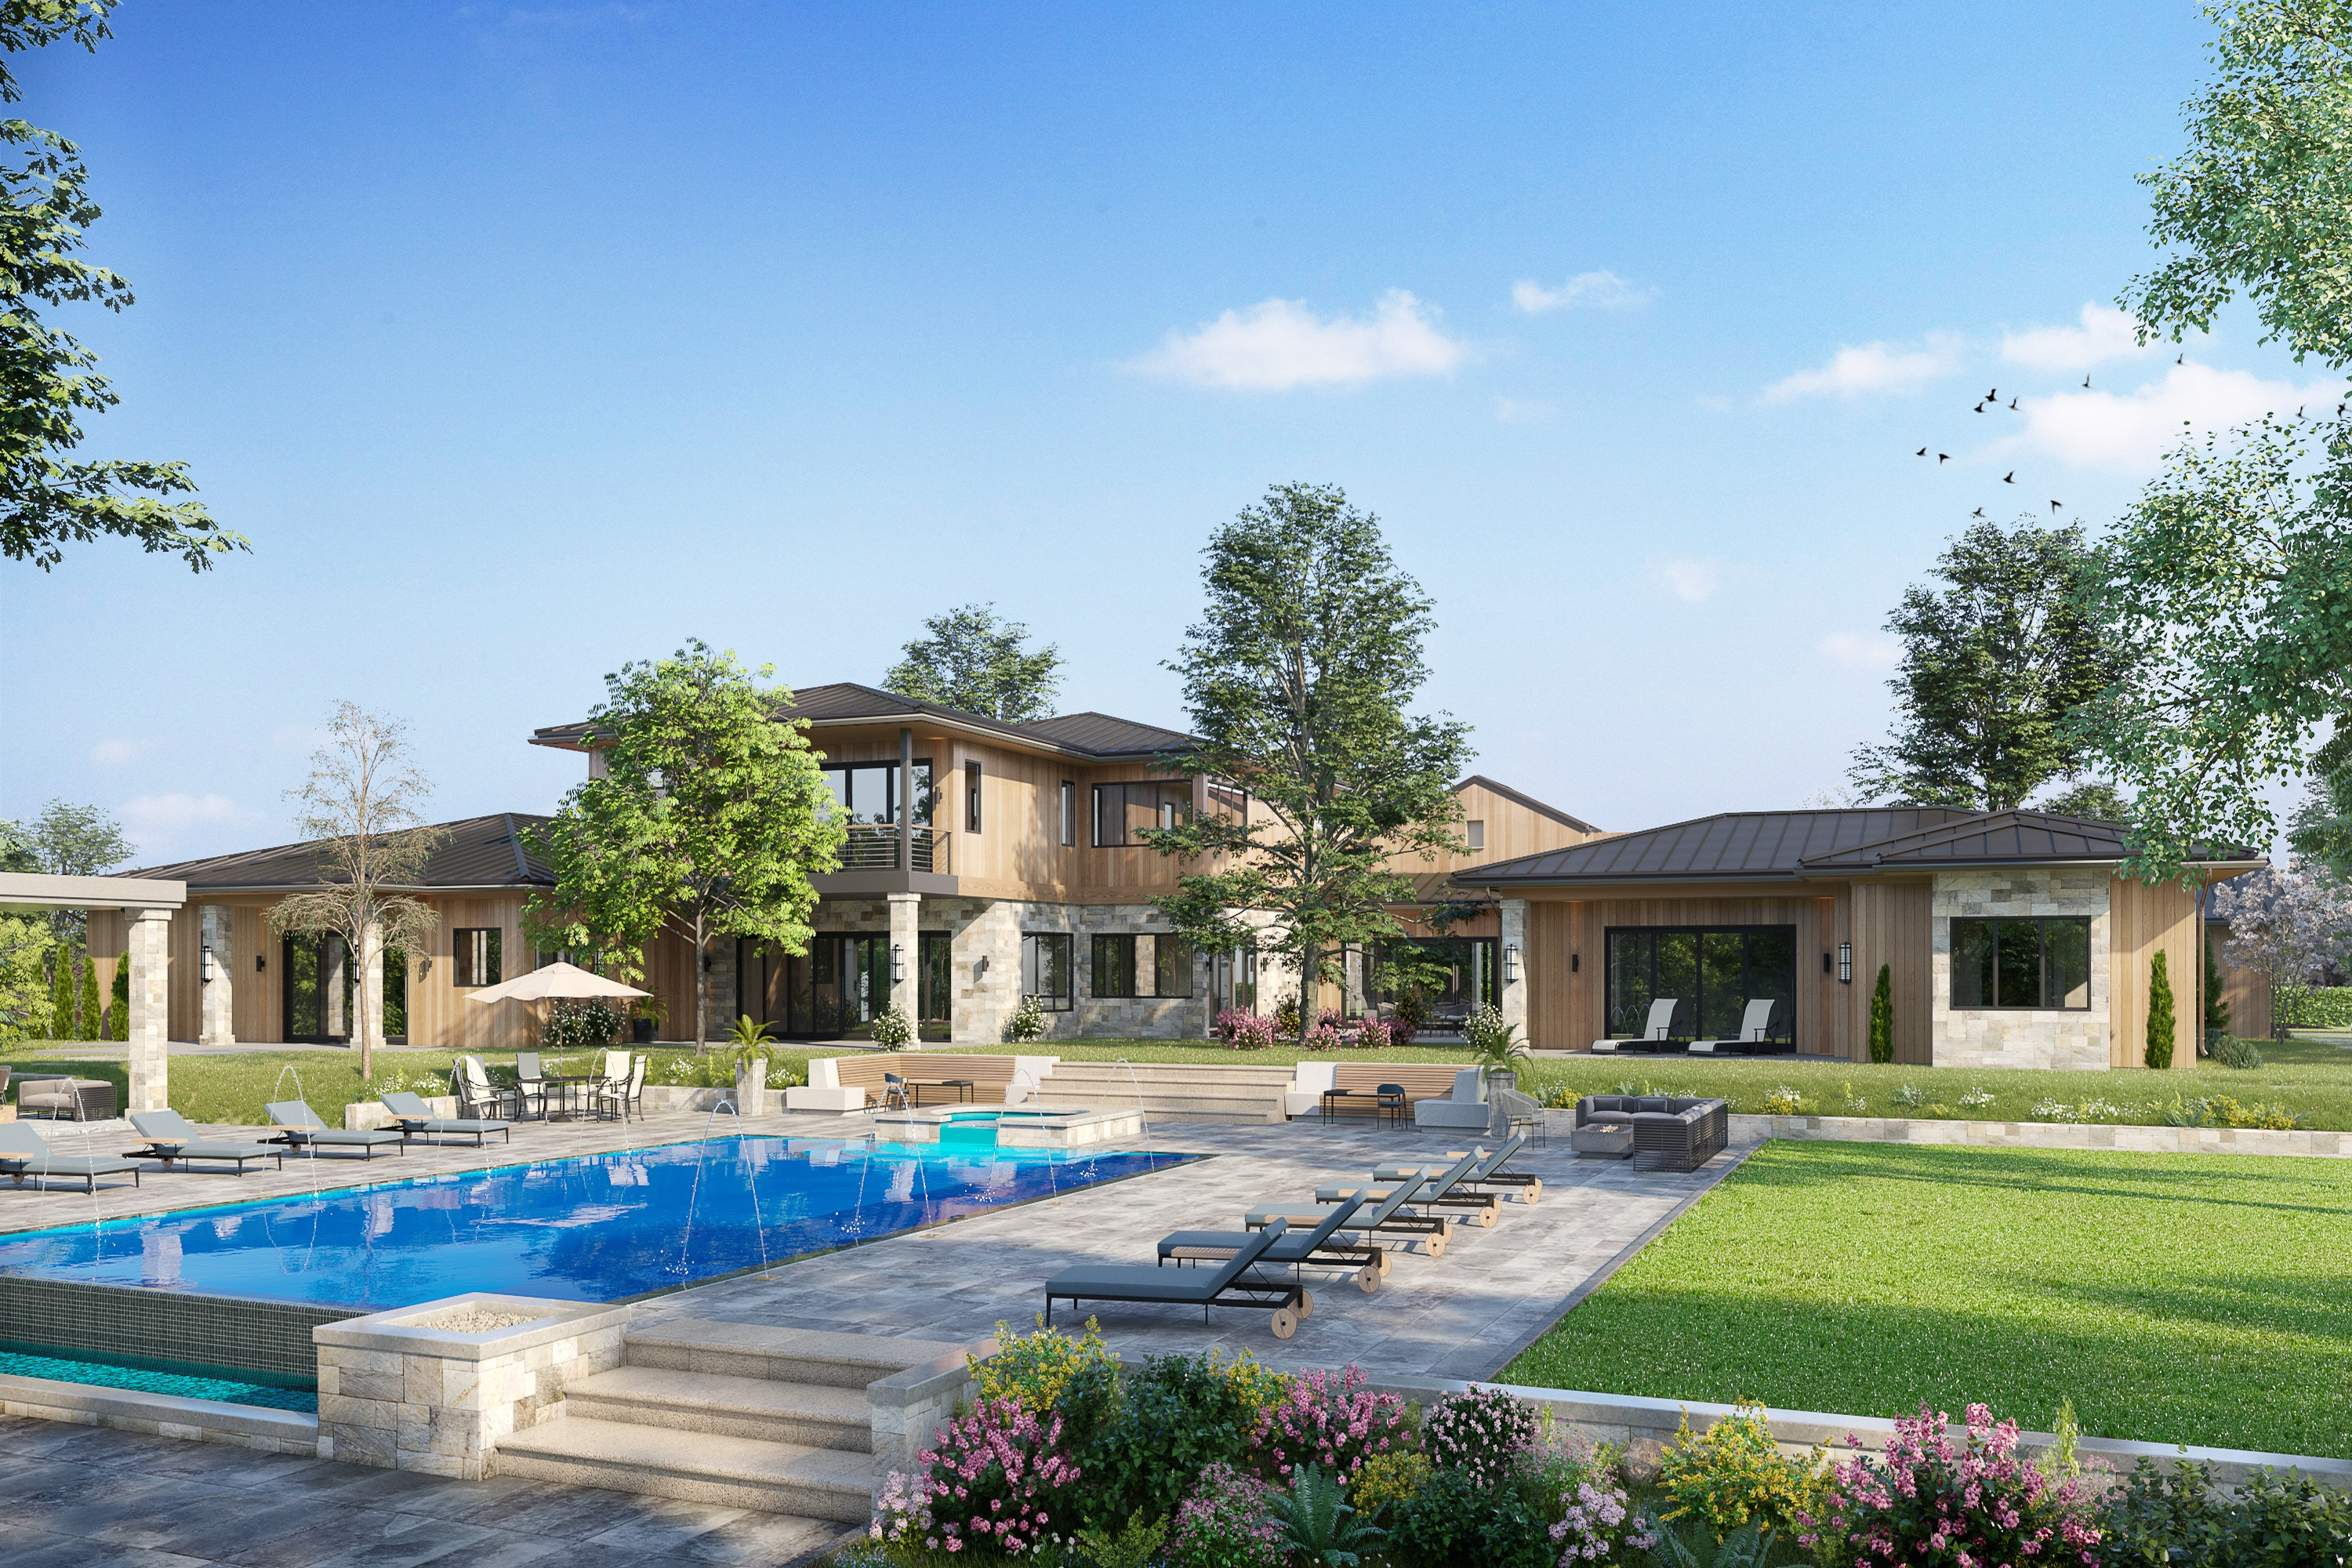 Residenza monofamiliare in vendita in Brand New, Expansive Setting, Panoramic Views, Los Altos Hills, California ,94022